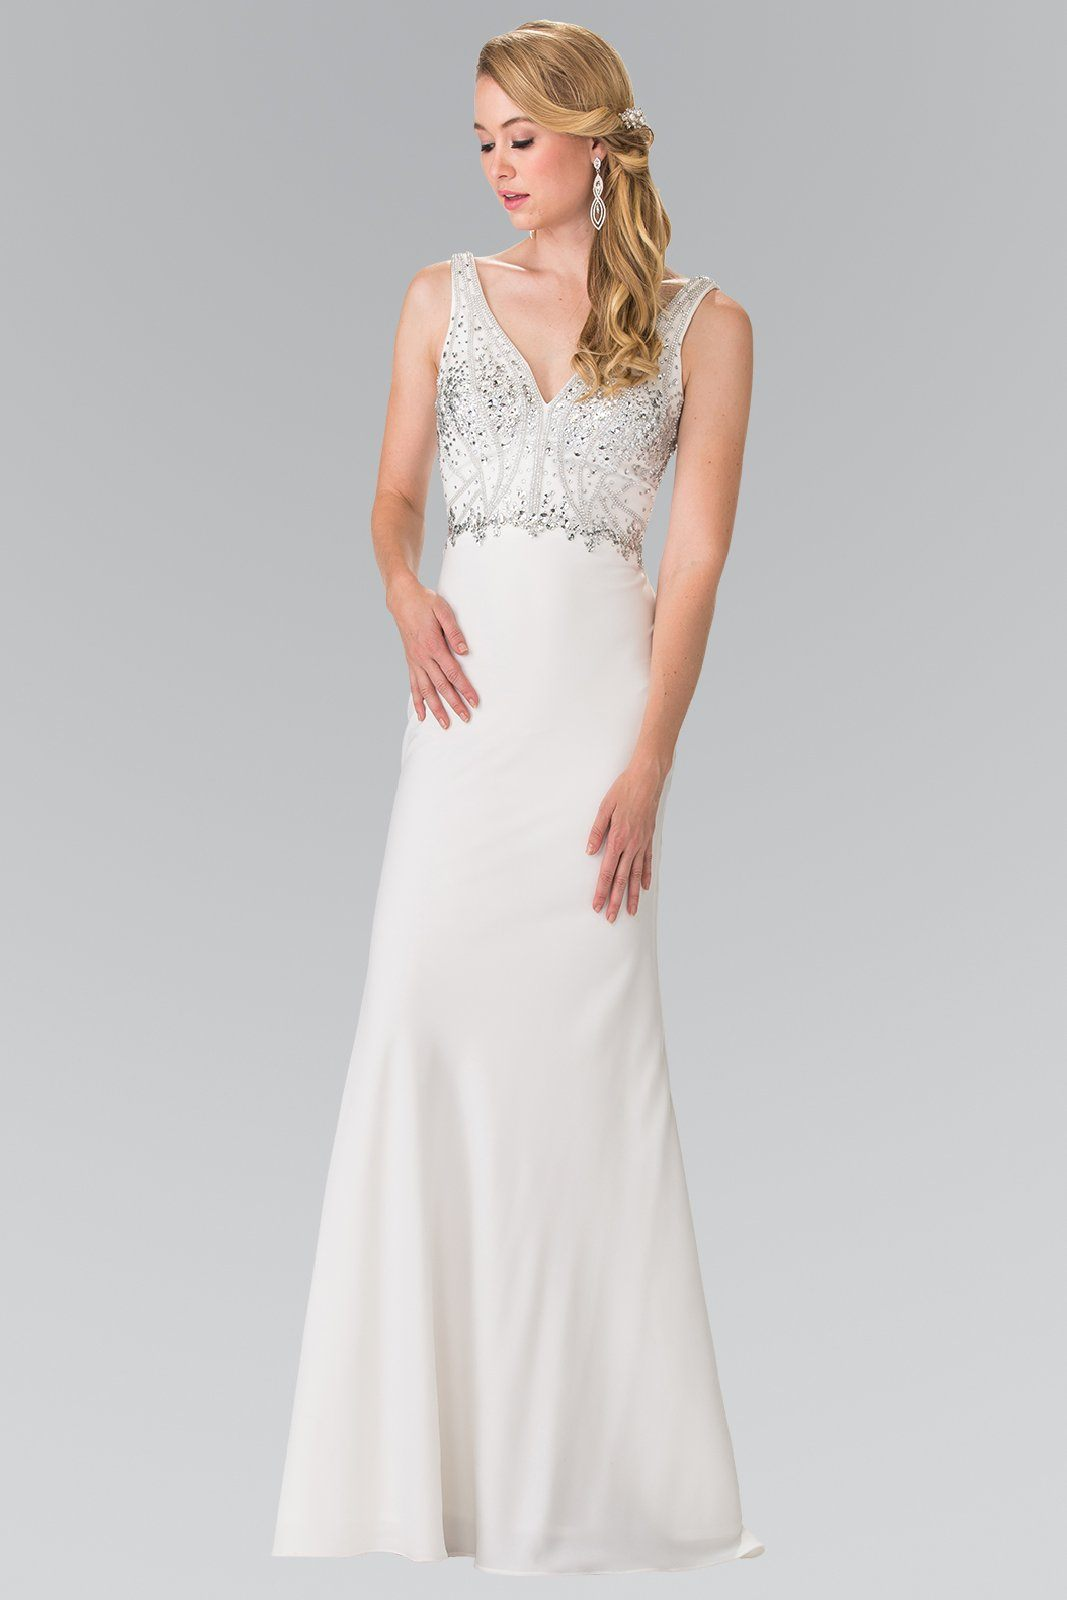 Vow renewal white formal dress gls 2261 simply fab dress white reception dress gls 2261 simply fab dress junglespirit Image collections